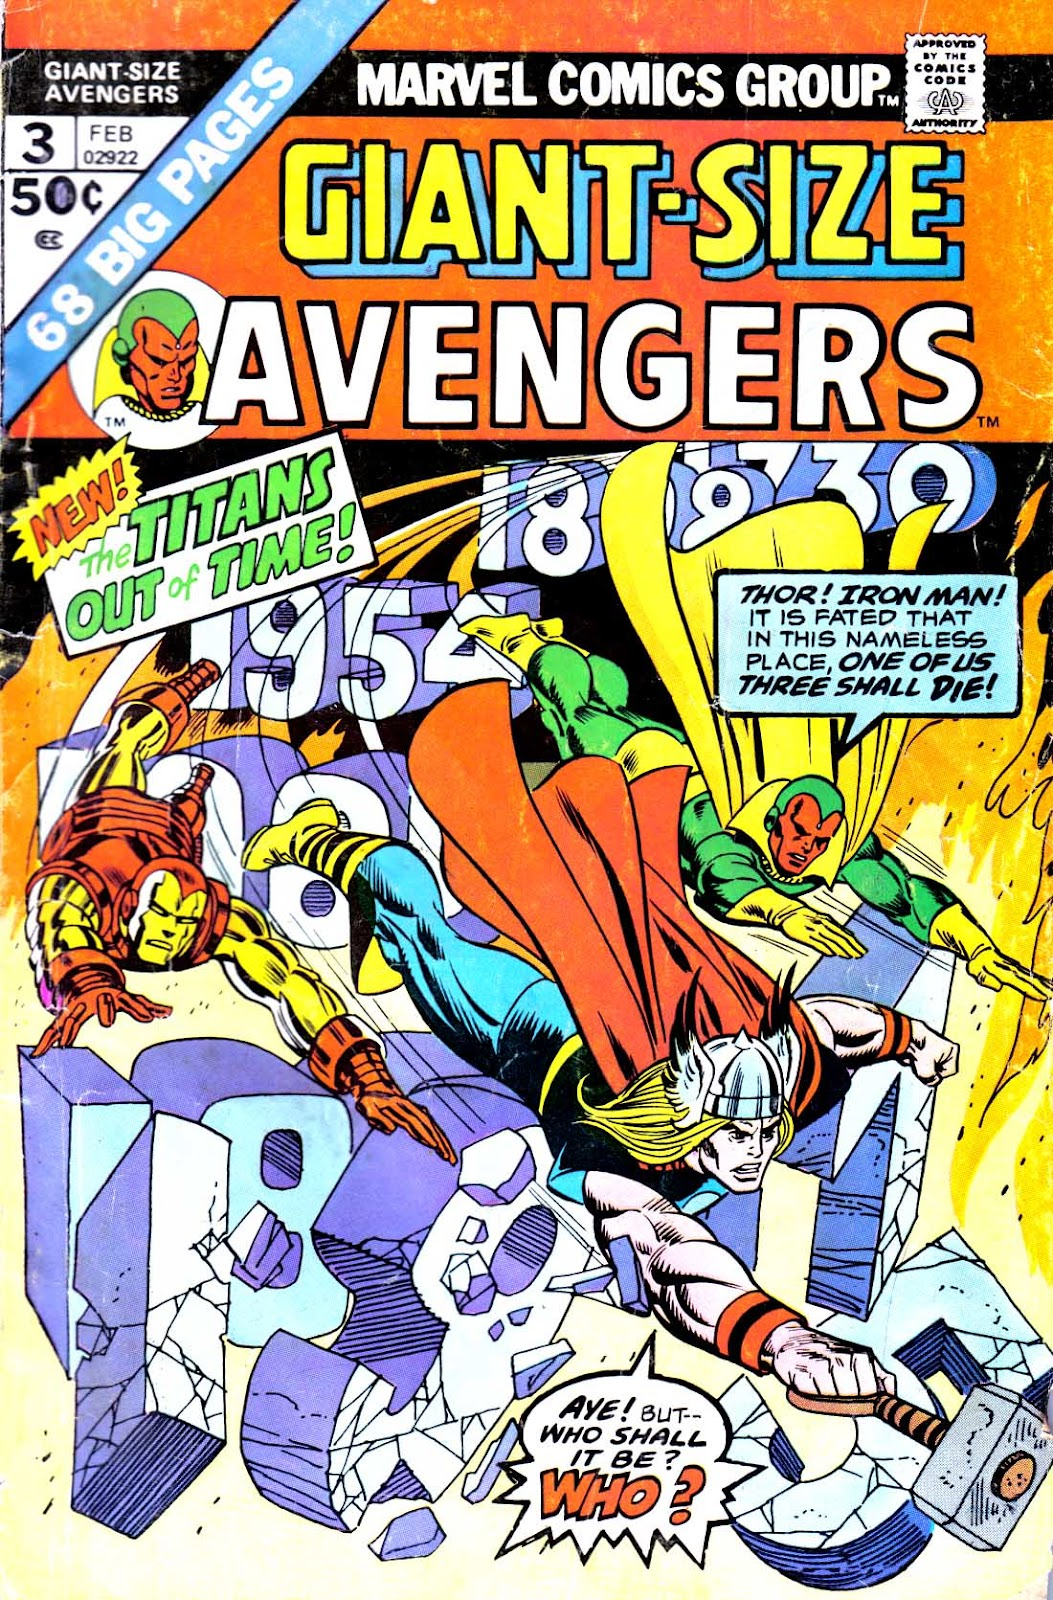 Giant-Size Avengers (1974) 3 Page 1